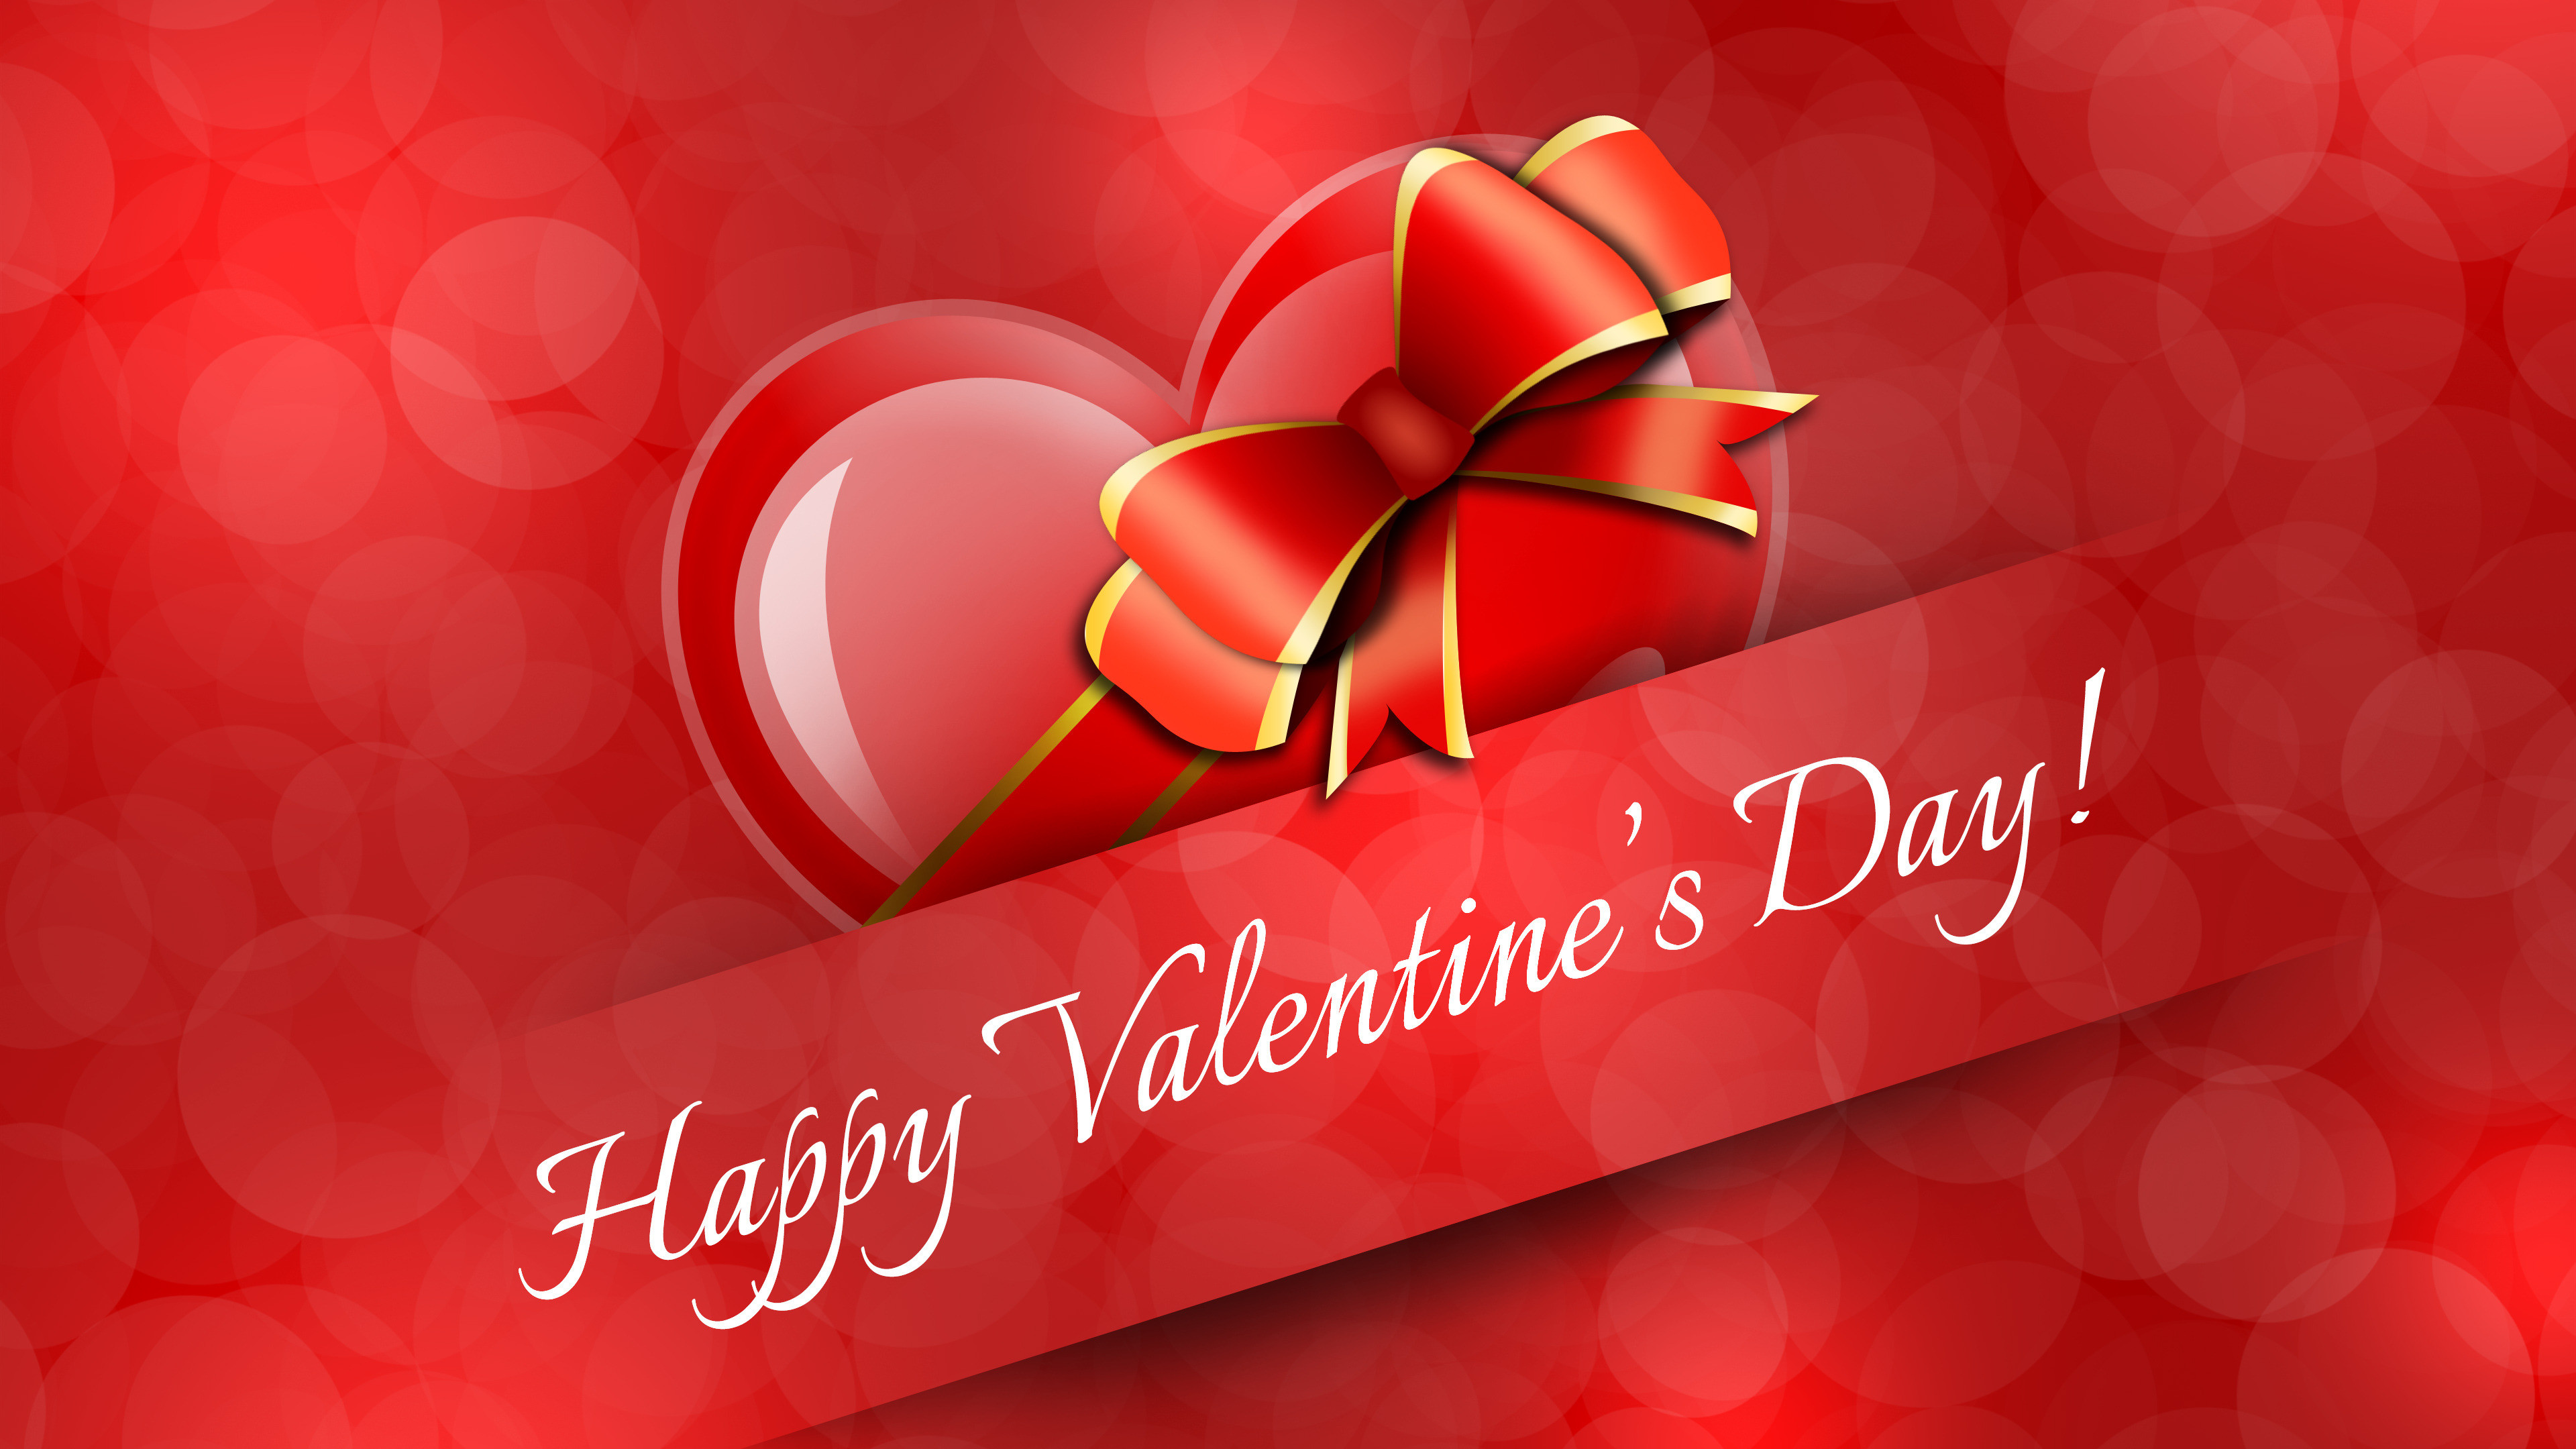 3840x2160 ... happy valentines day love hd wallpaper.